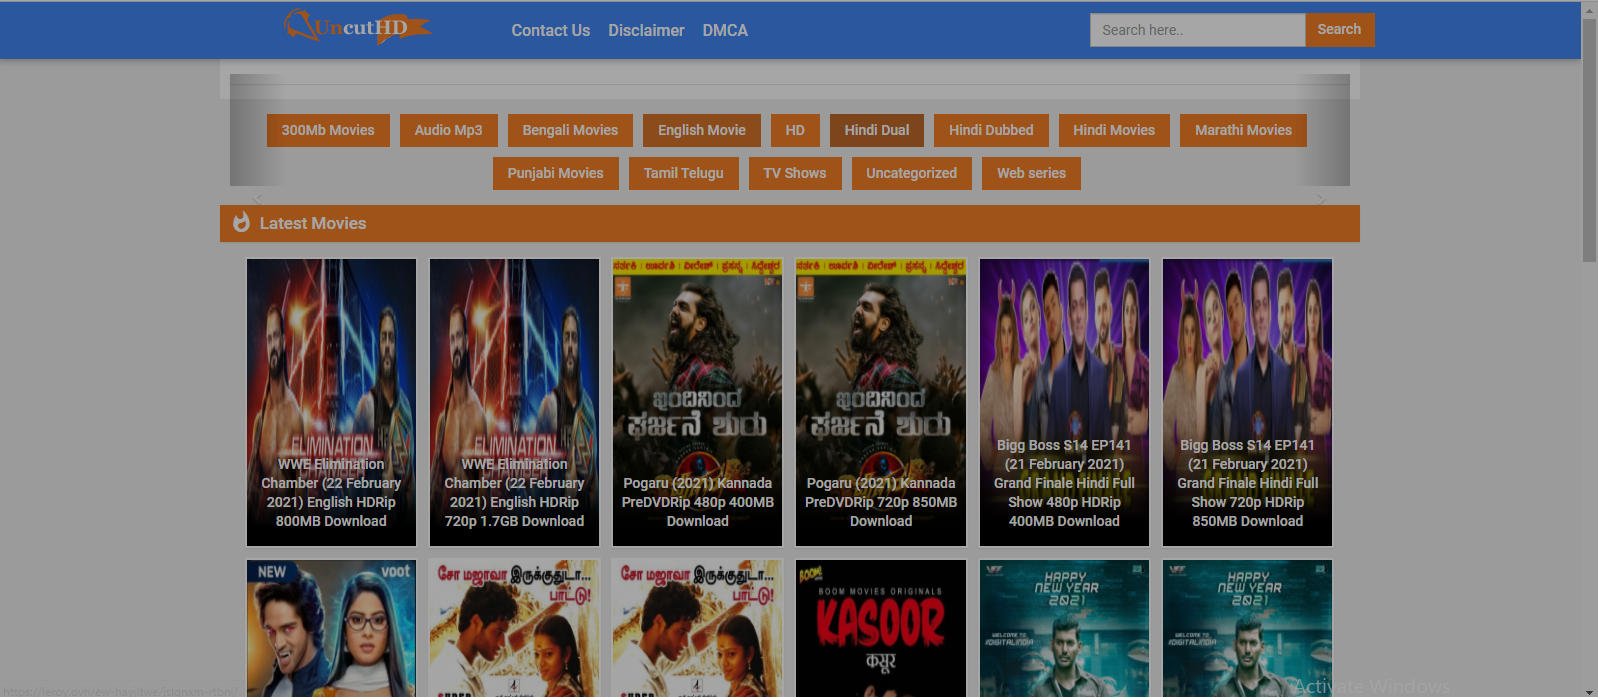 Uncuthd 2021: Illegal Movies Download Website Uncuthd, Uncuthd is a piracy website which allows users to download Bollywood movies online illegally. Watching or downloading movies from Uncuthd is an act of piracy., Uncuthd, Uncuthd online, download Bollywood movies, Uncuthd 2021